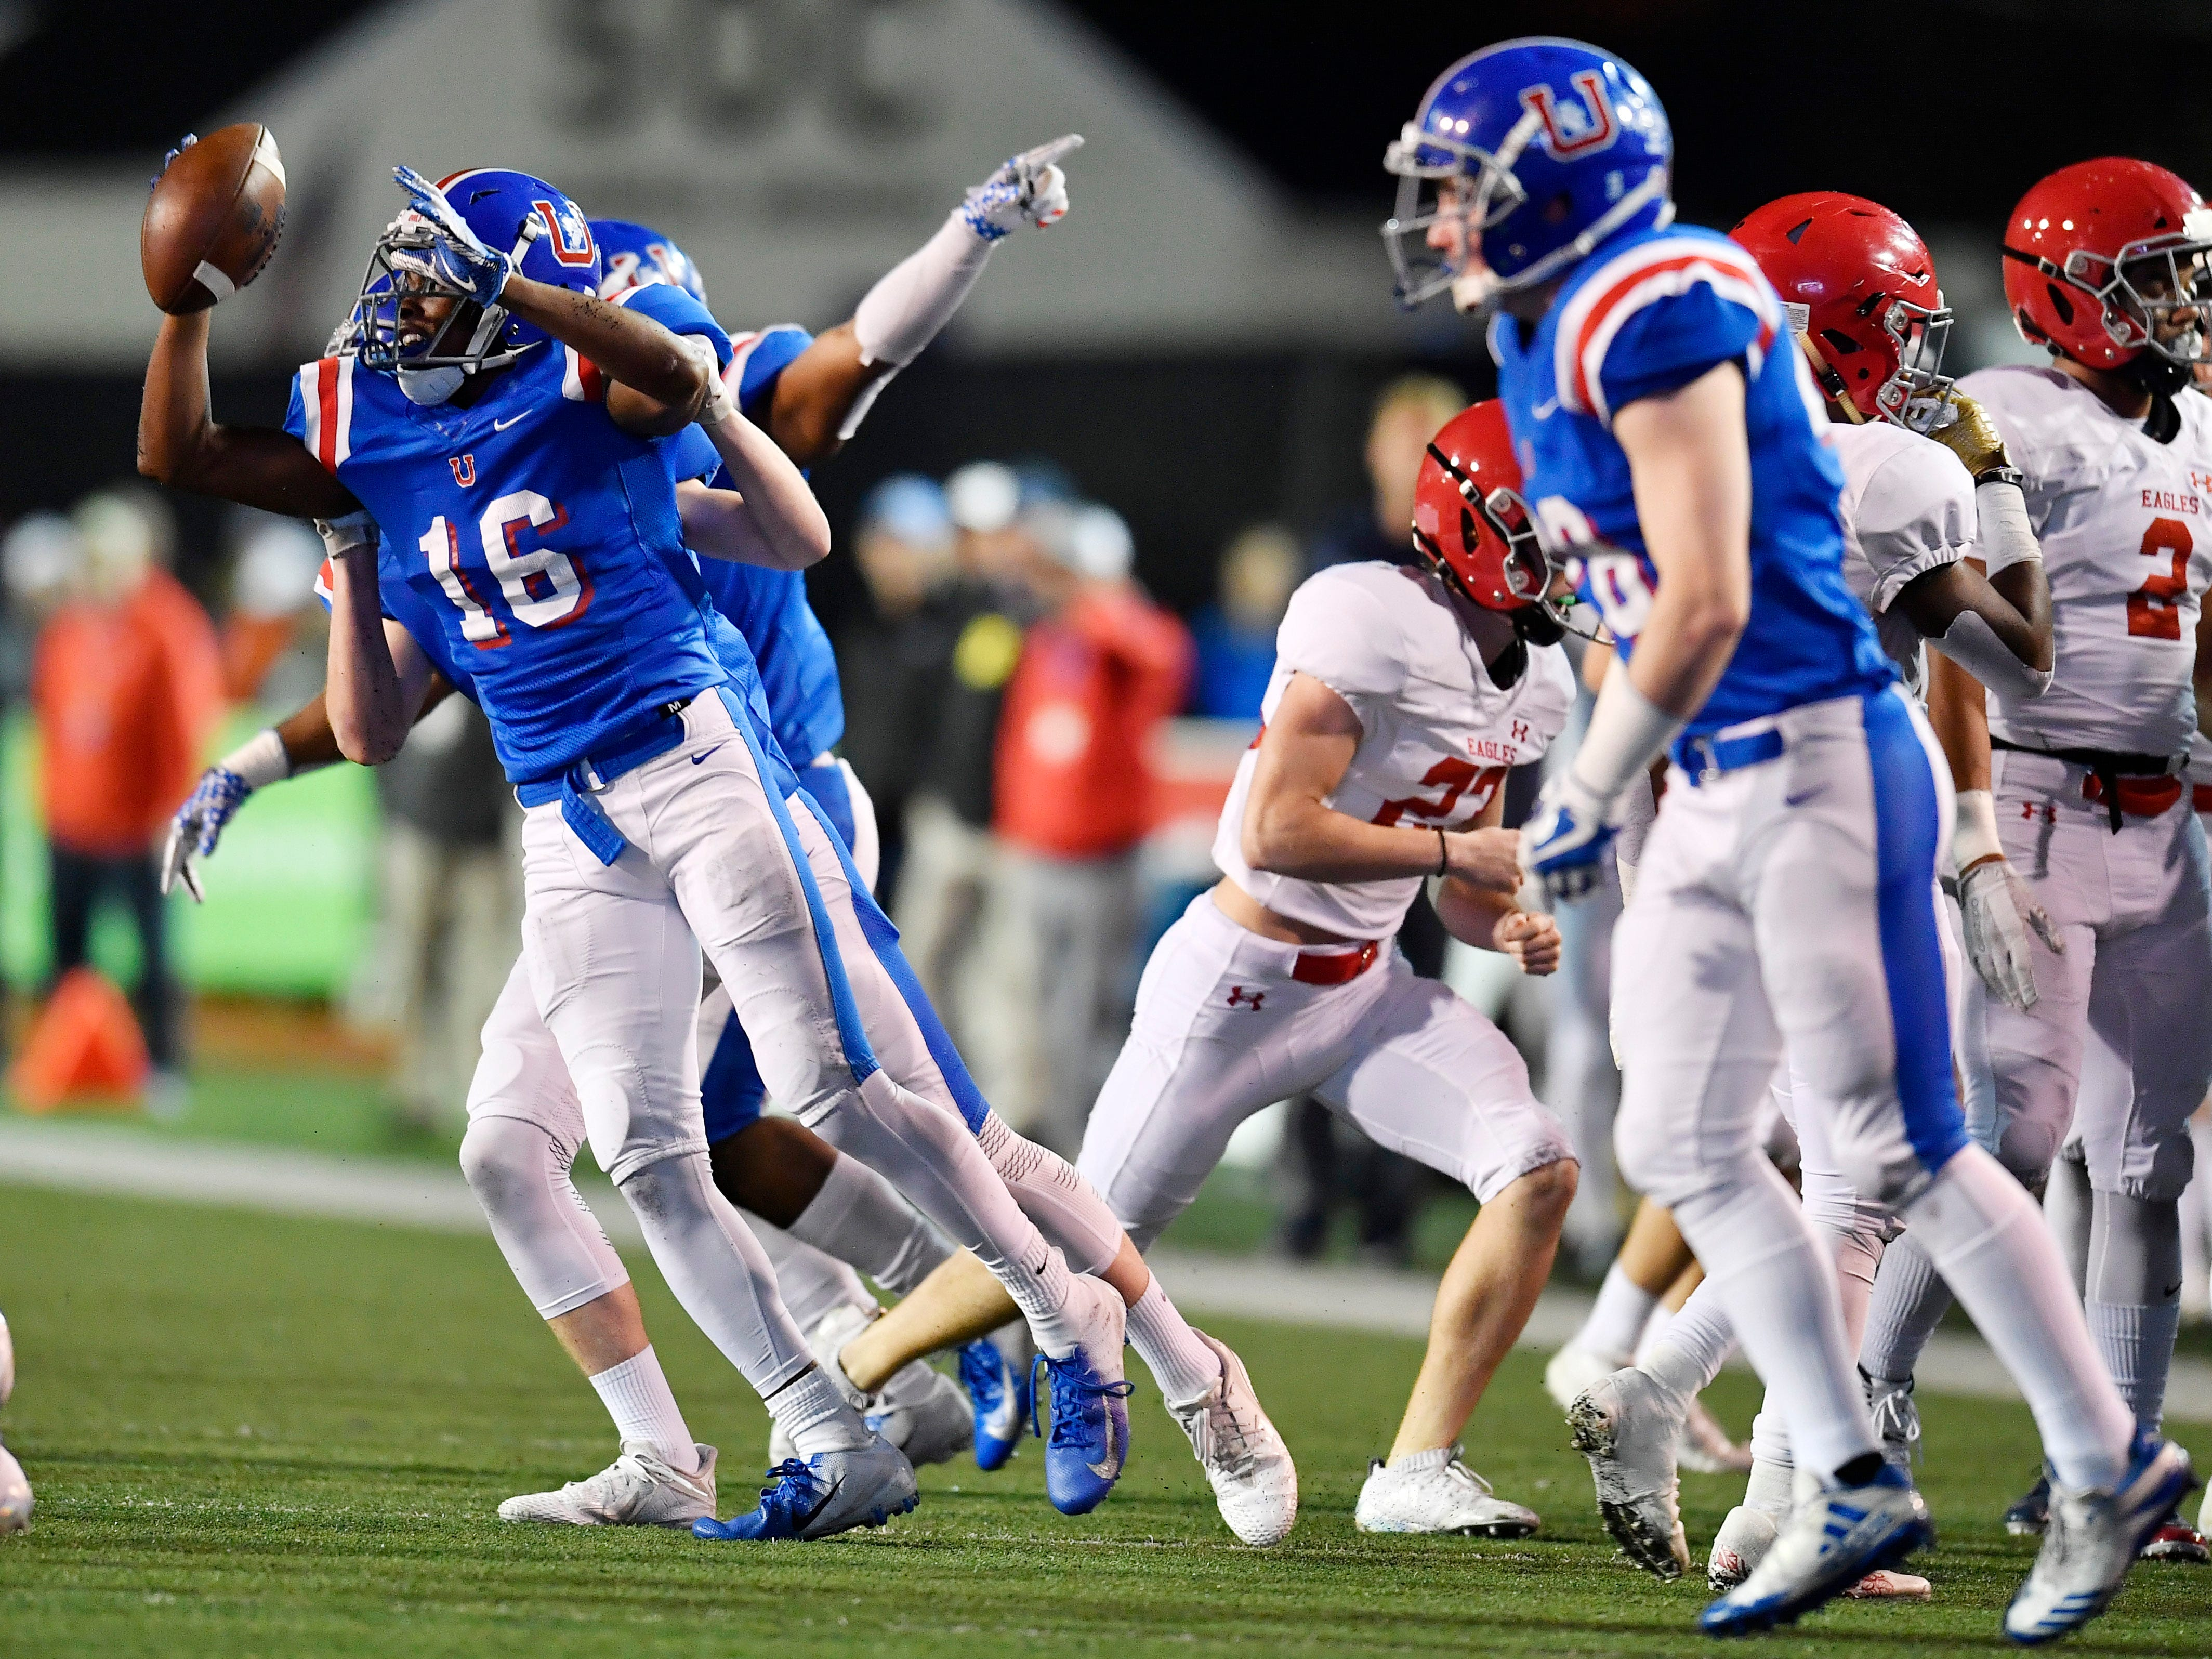 Memphis Univ. School wide receiver Roderic Lewis (16) celebrates a kickoff recovery in the first half against Brentwood Academy at the Division II-AAA BlueCross Bowl state championship at Tennessee Tech's Tucker Stadium in Cookeville, Tenn., on Friday, Nov. 30, 2018.